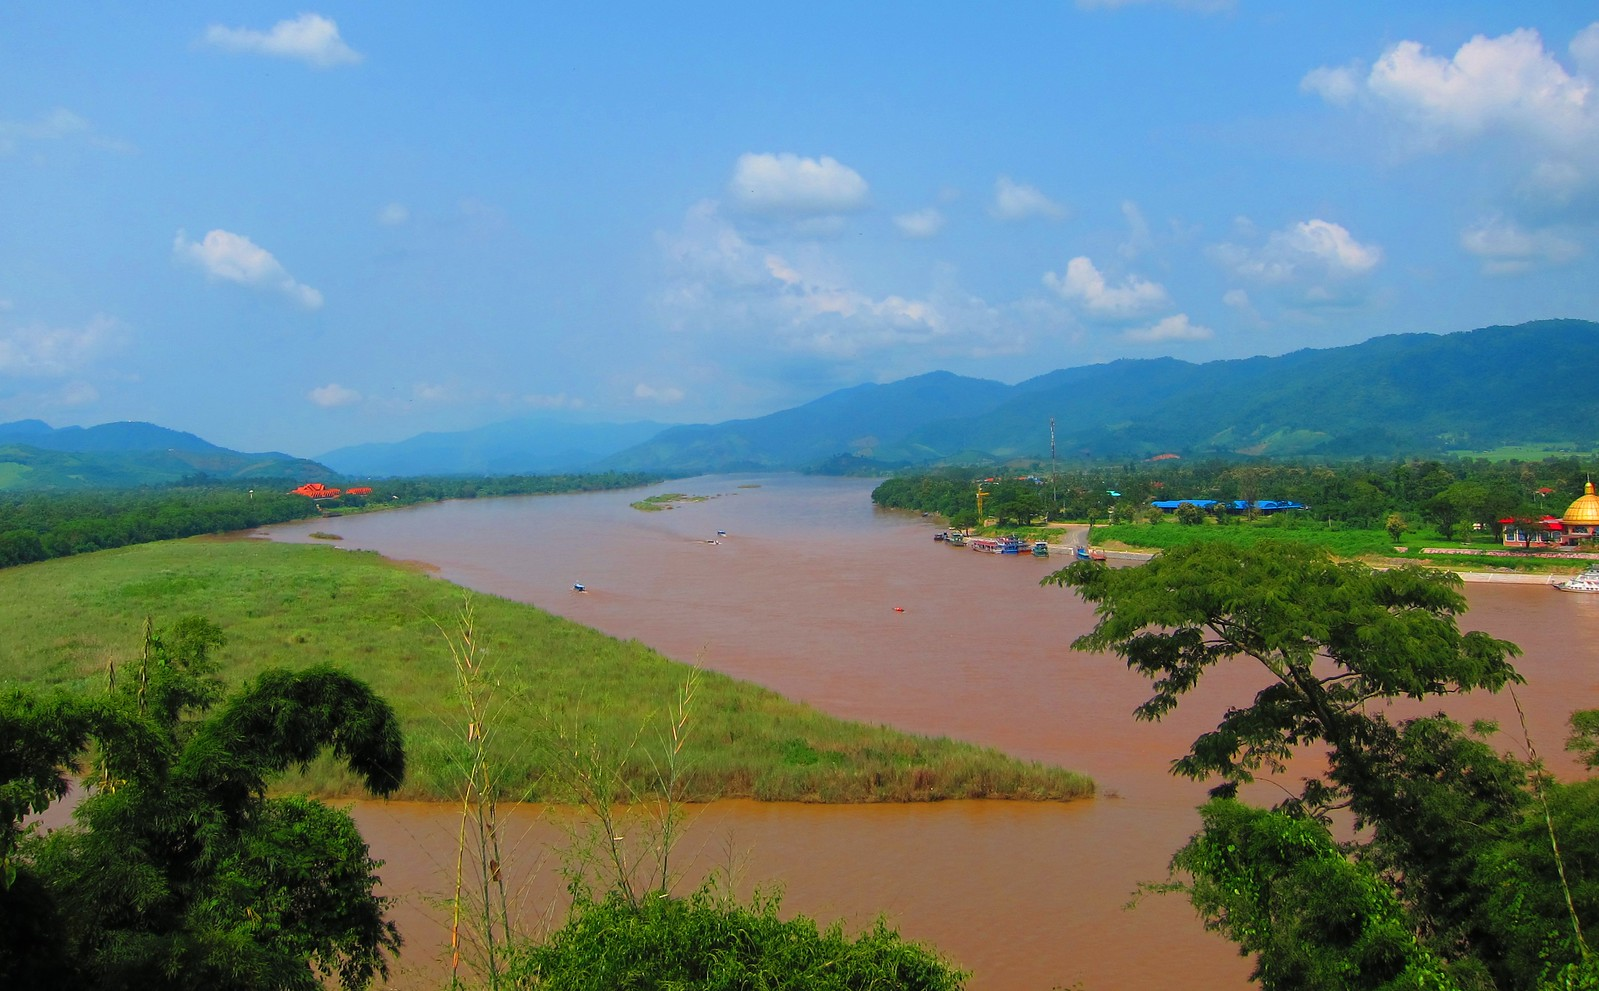 View of Thailand, Myanmar and Laos